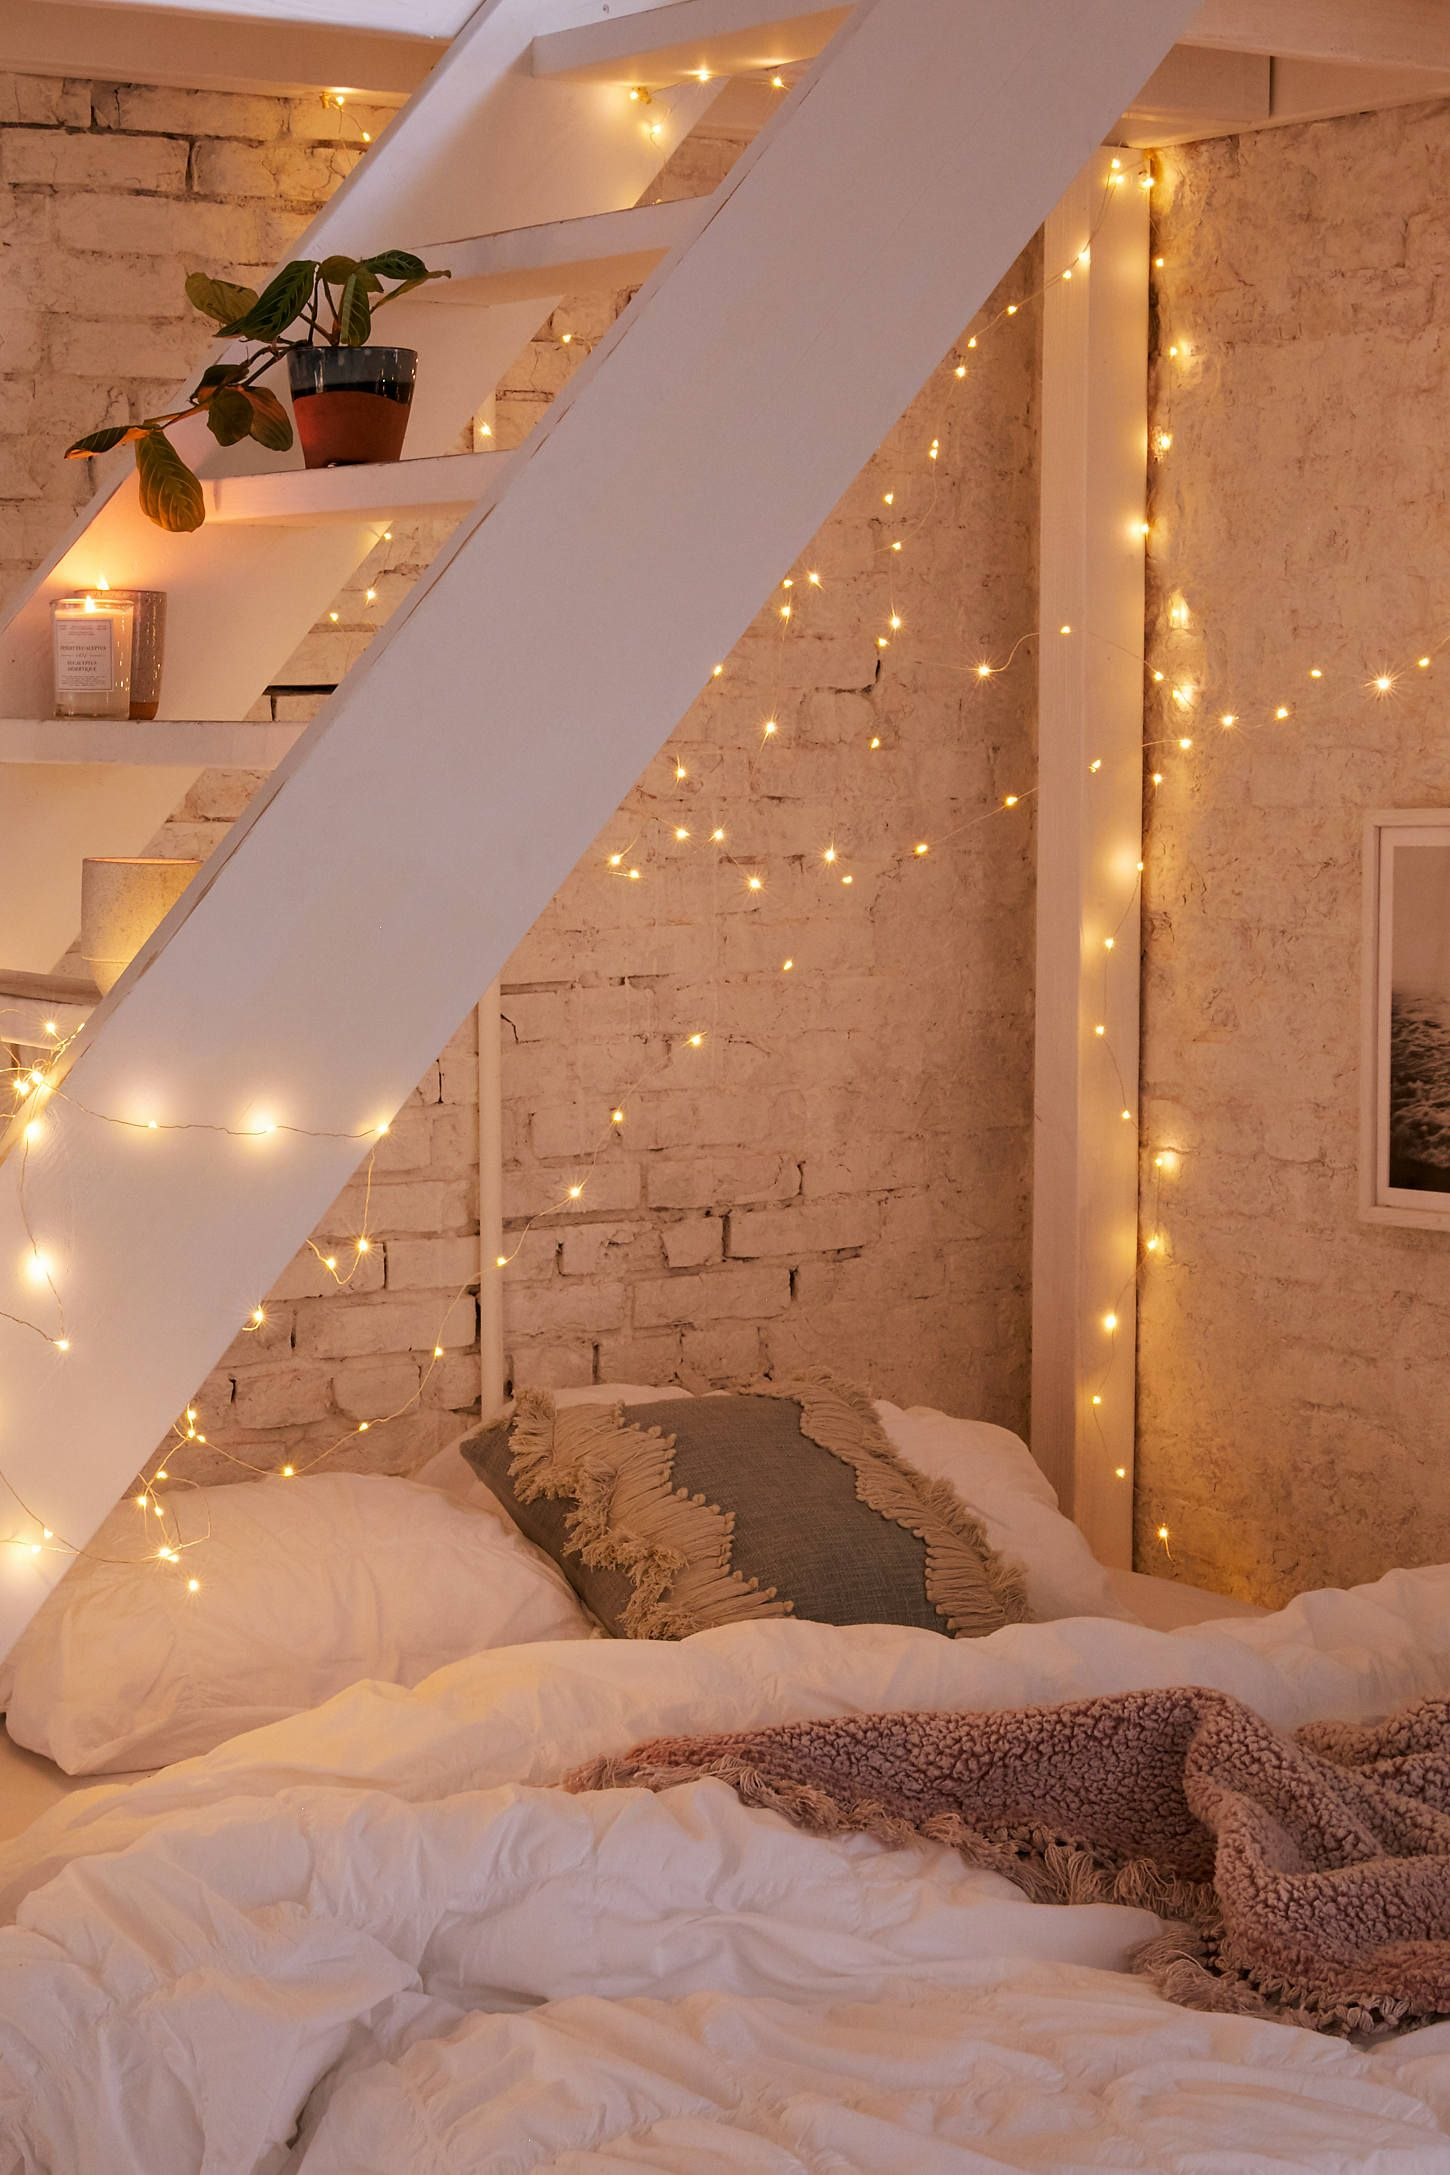 Decorating Tips For A Sexy Bedroom Best Inexpensive Bedroom Decor